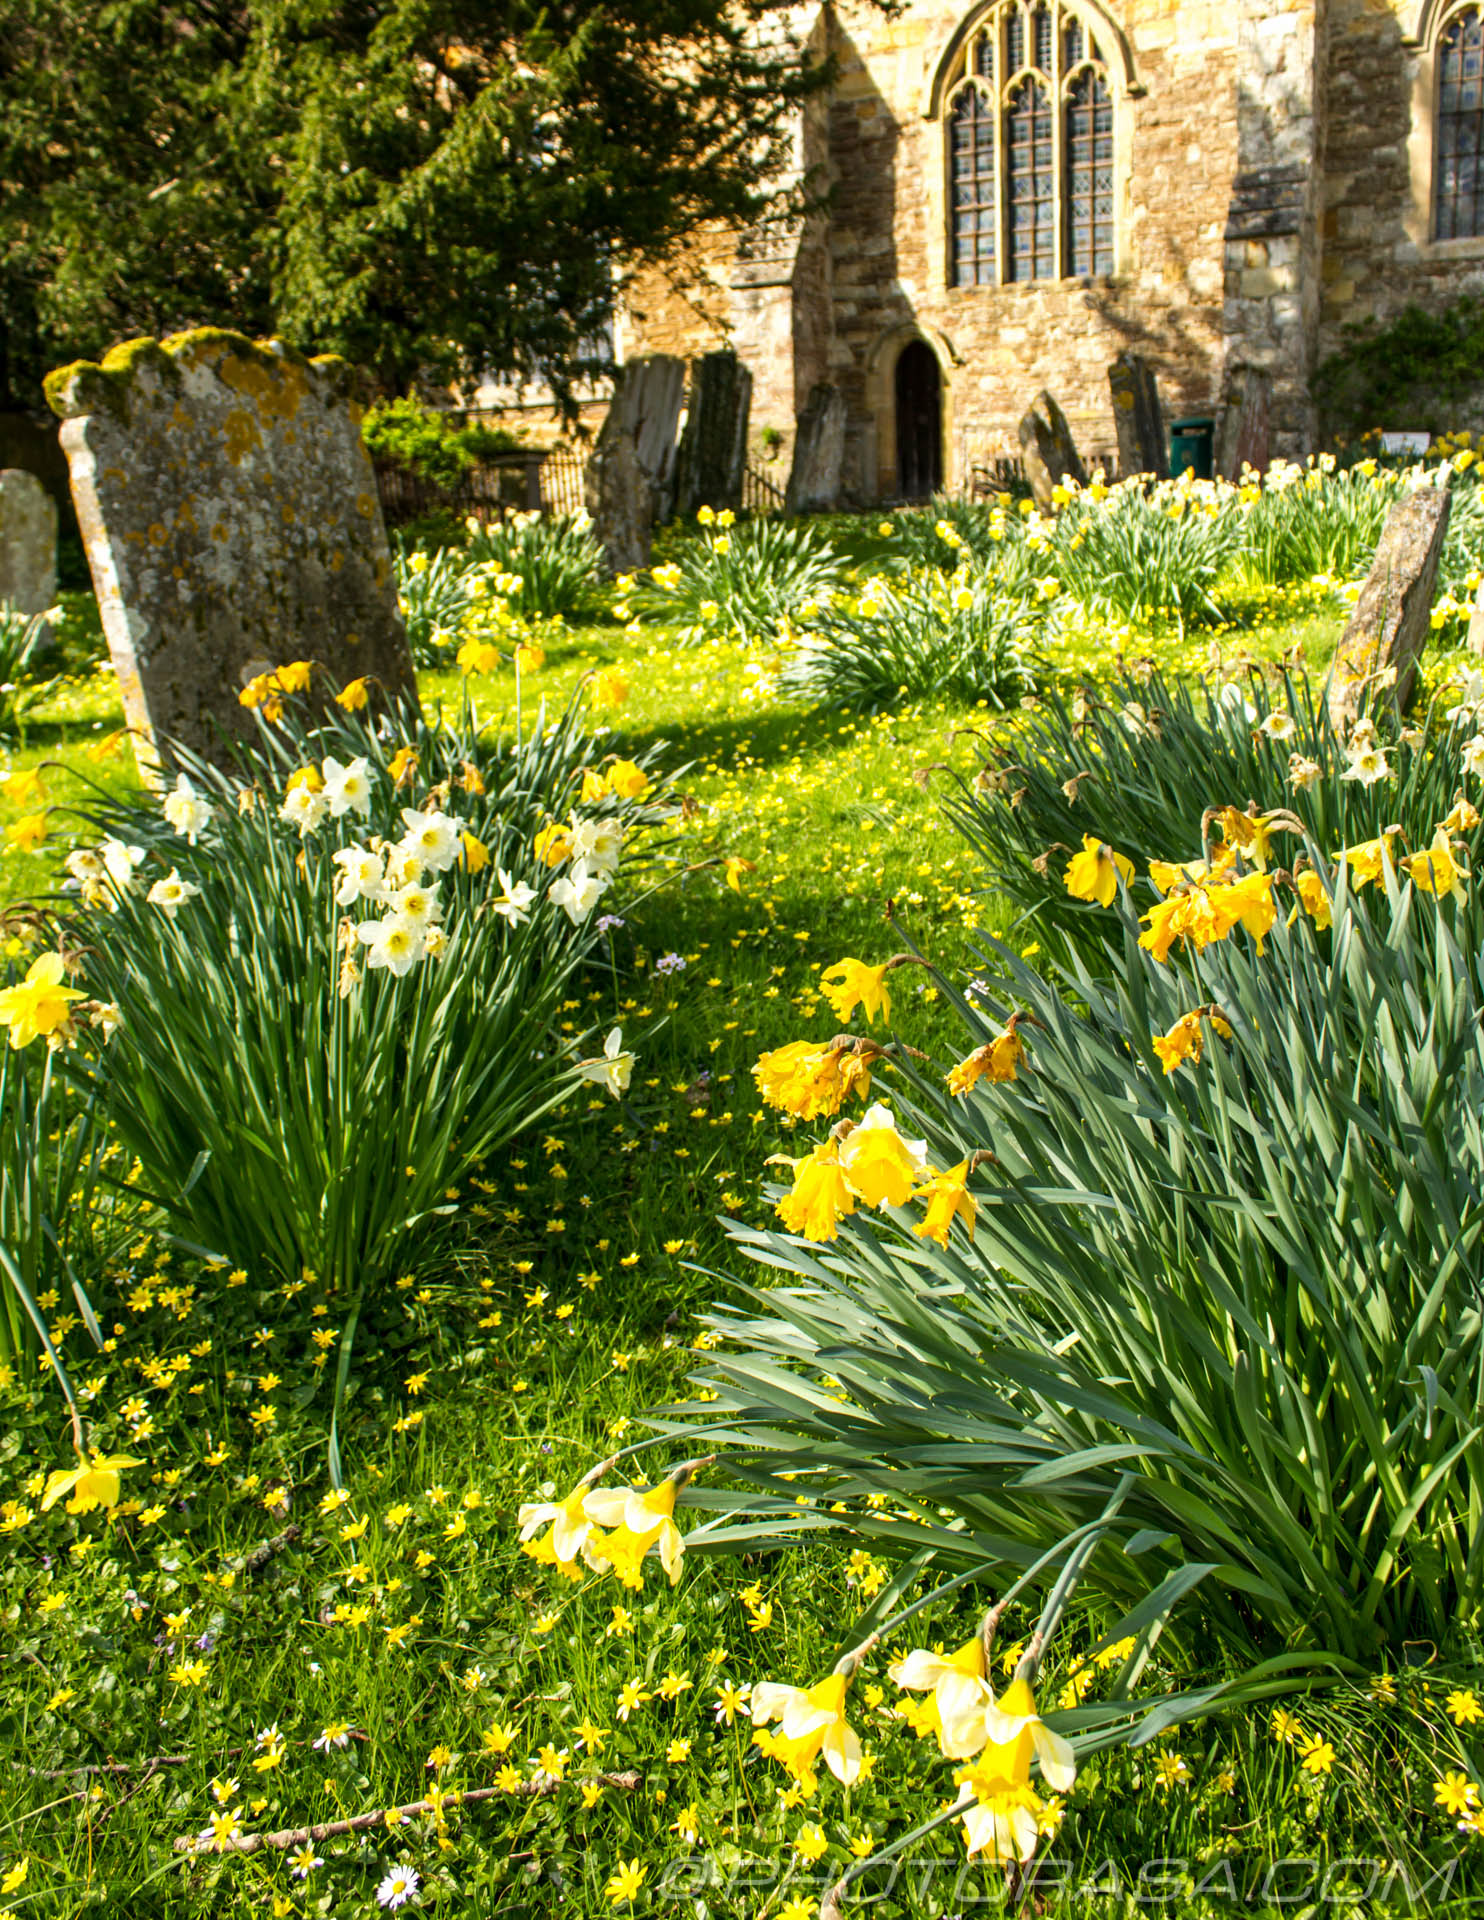 http://photorasa.com/saints-church-staplehurst-kent/daffs-and-buttercups-leading-to-church-door/